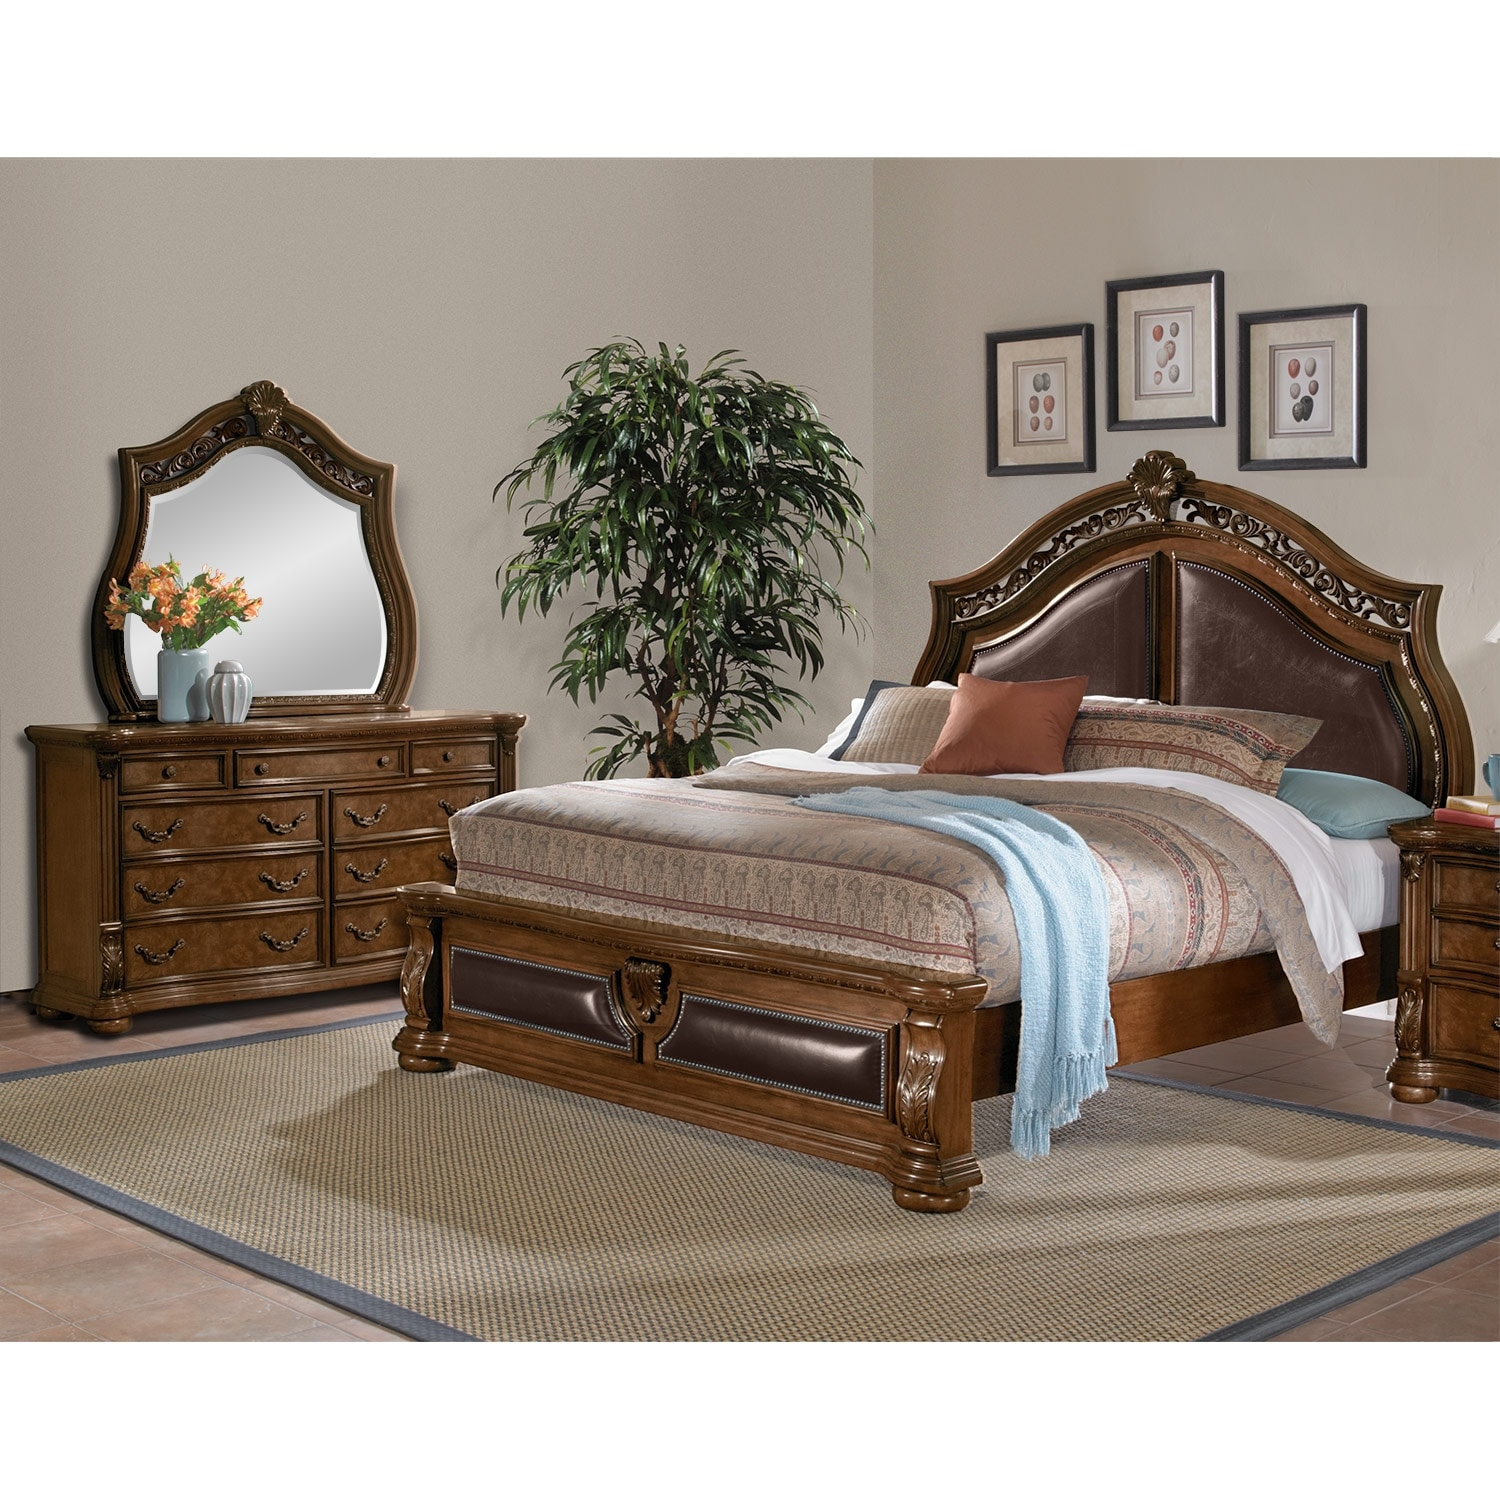 Great Morocco 5 Piece Queen Upholstered Bedroom Set   Pecan